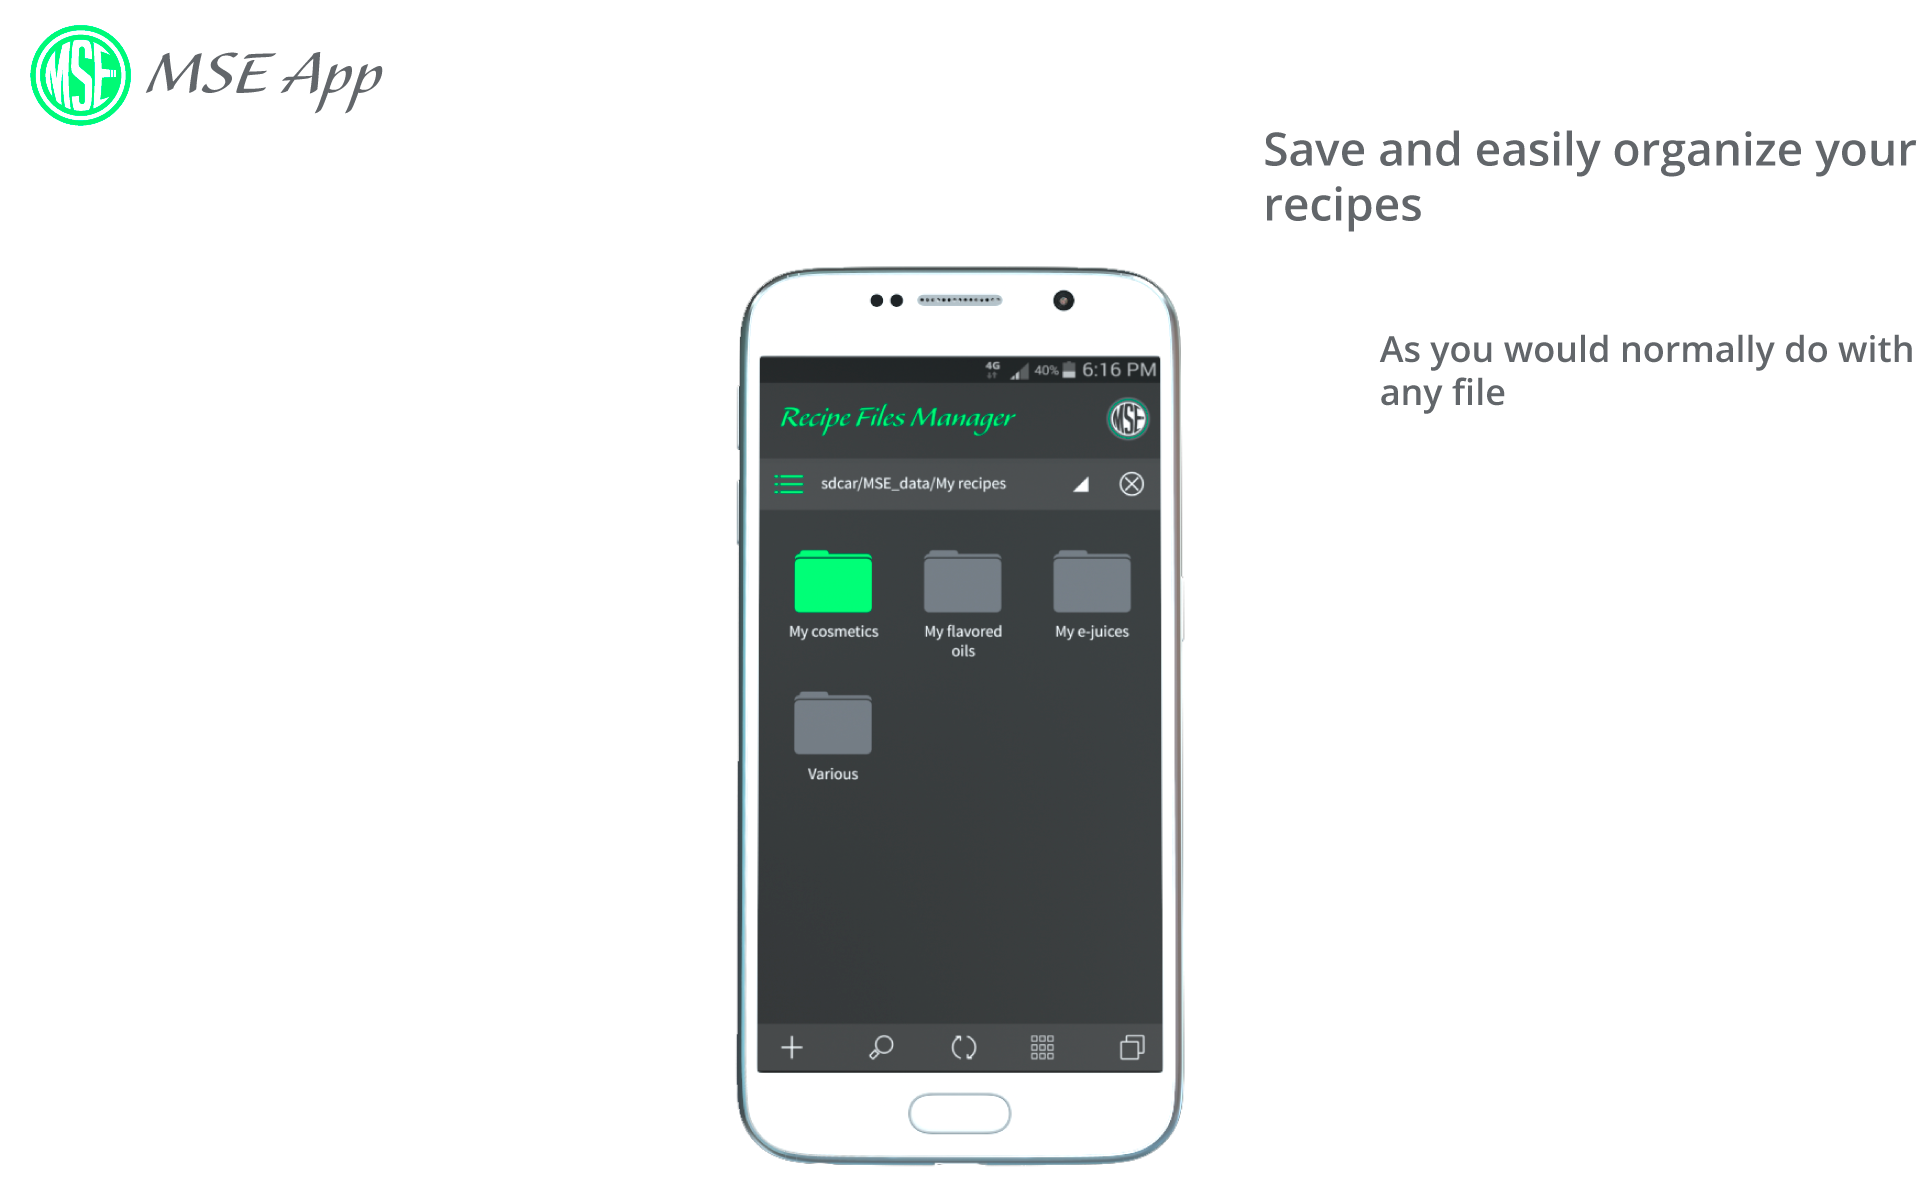 Manage your recipes files